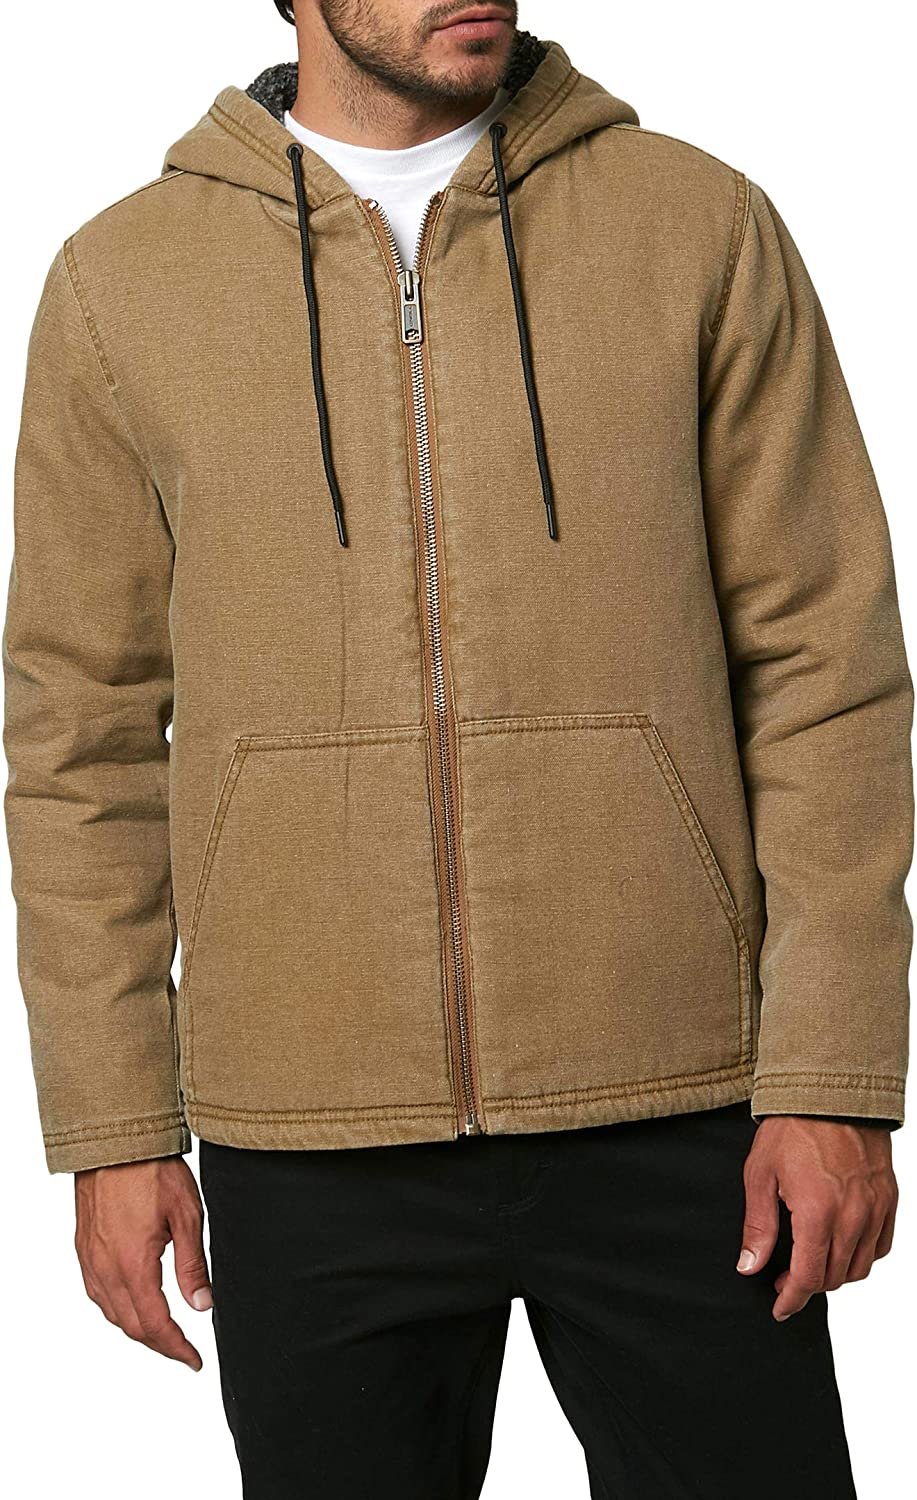 O'NEILL Men's Hooded Zip Up Canvas Jacket (Tobacco/Chapman, XL): Clothing